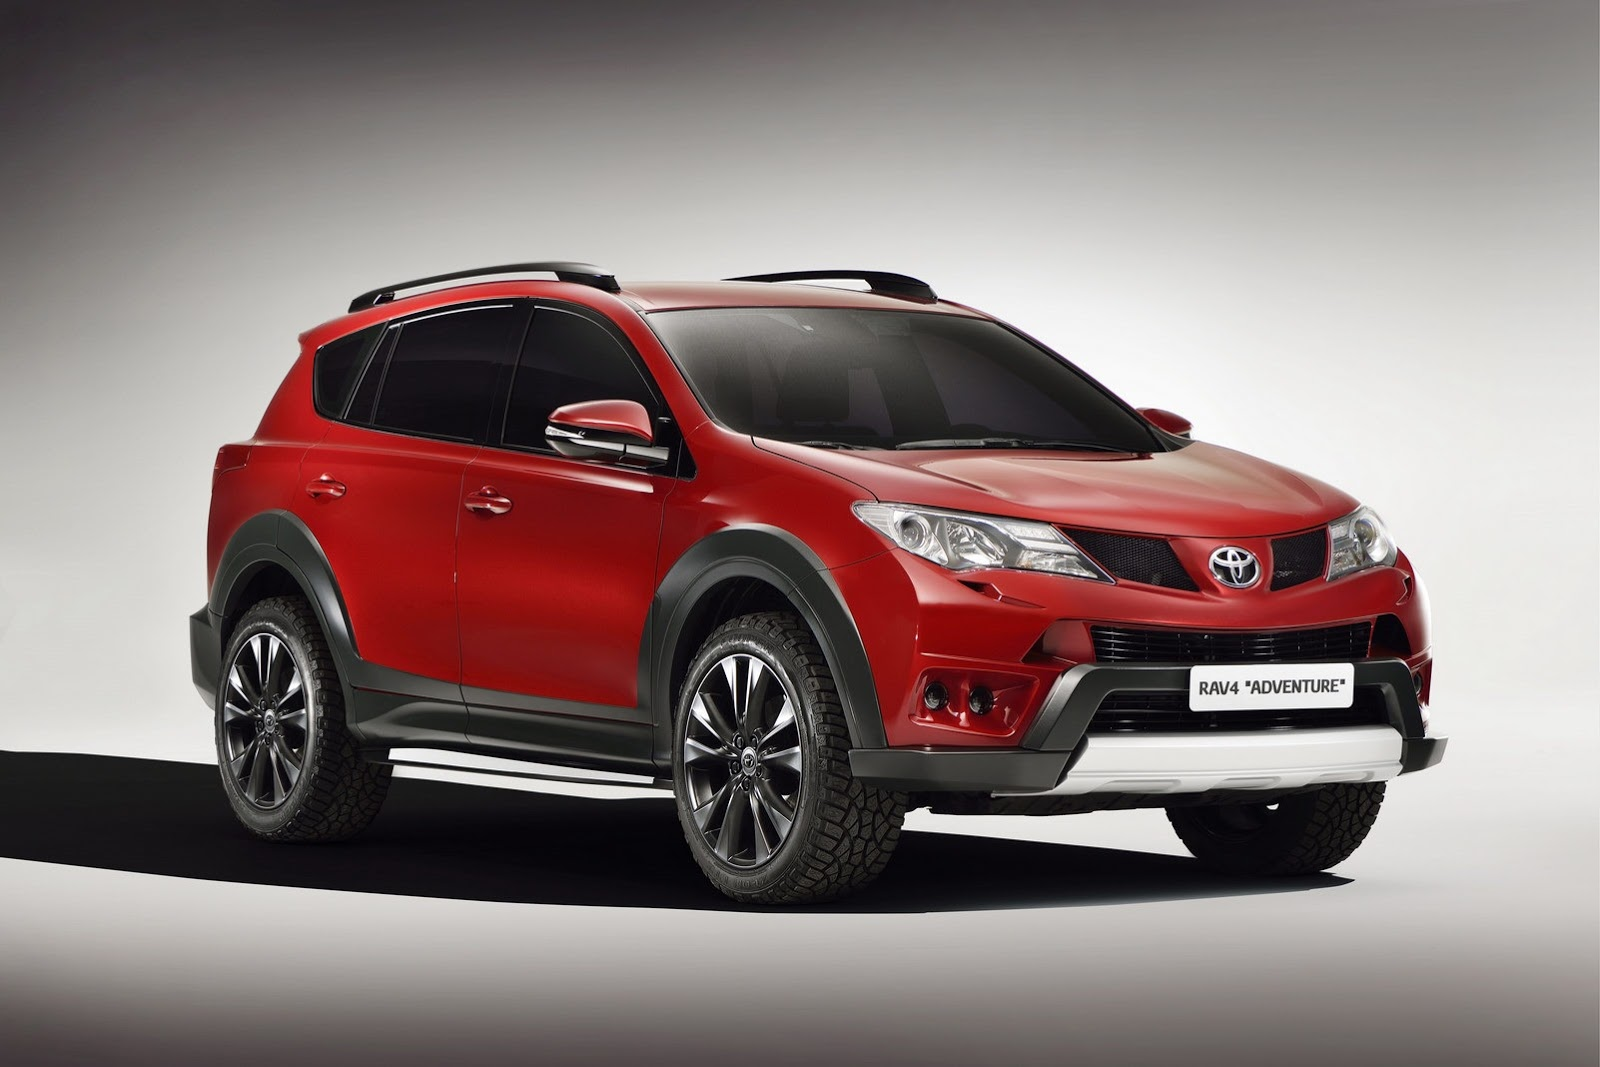 Toyota Ft 1 Concept Price >> Toyota Gets Tough, Luxurious with New RAV4 Concepts - autoevolution